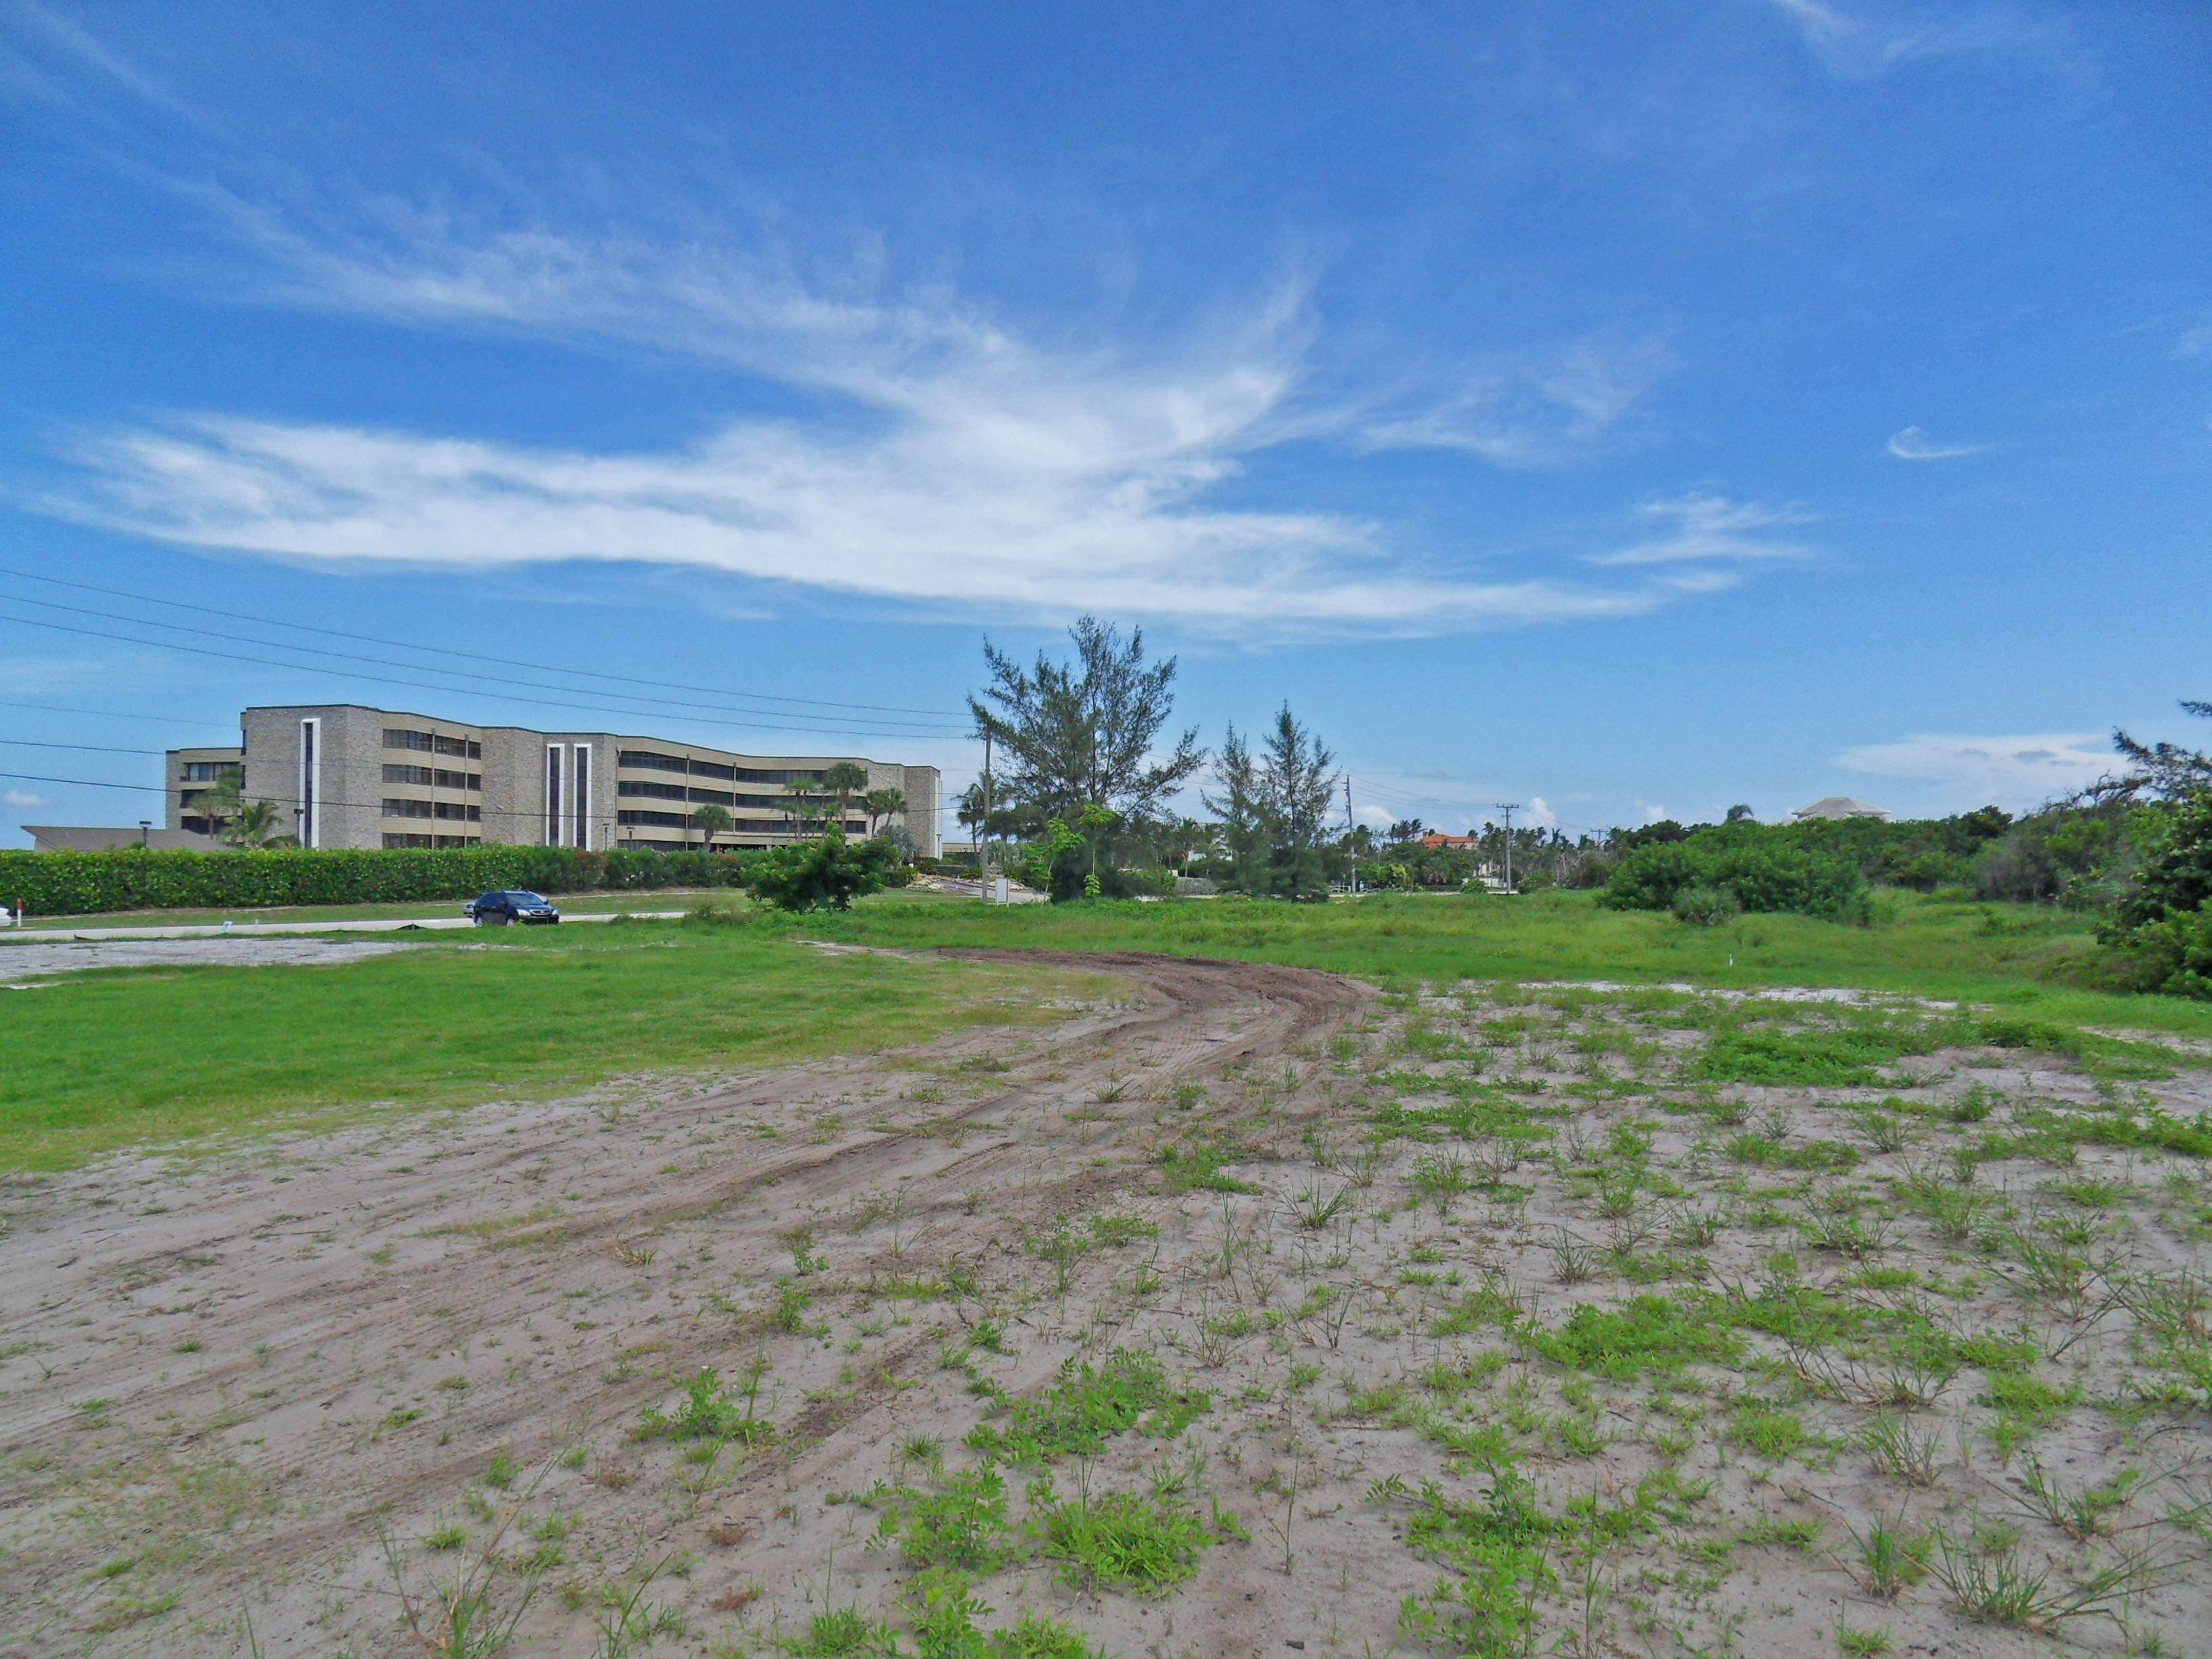 Vacant Land for Sale on Hutchinson Island - With Dock